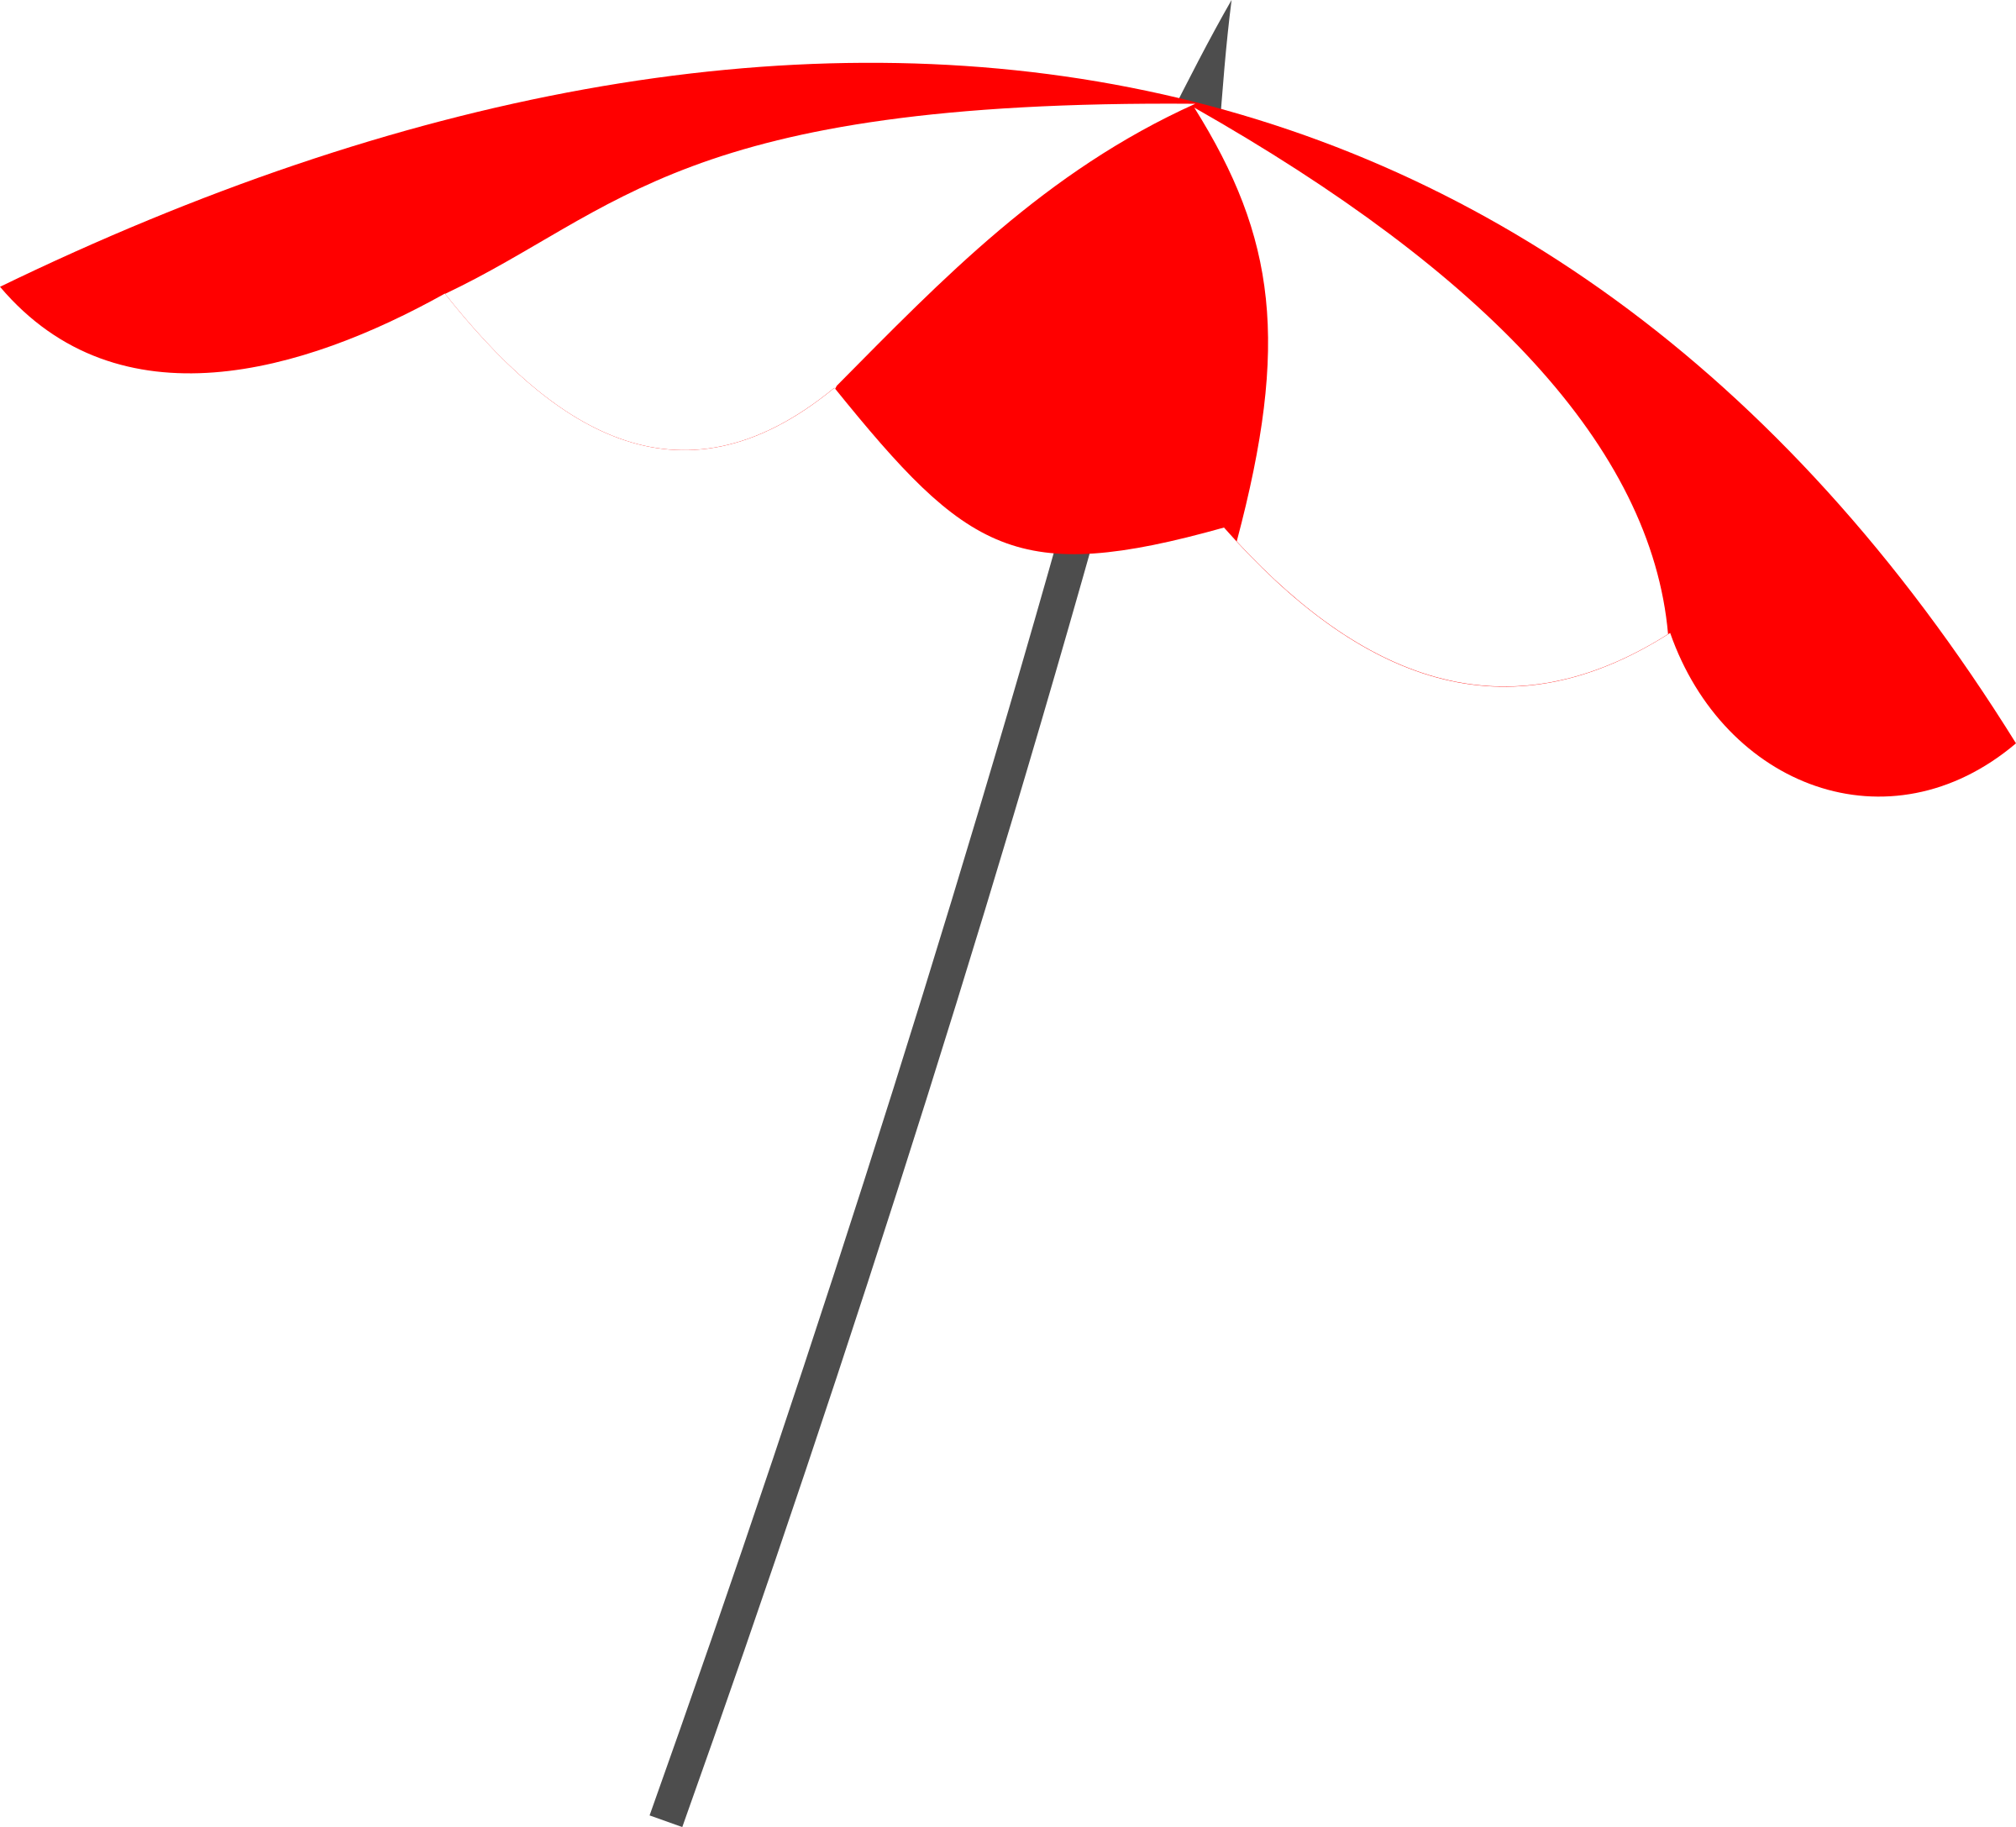 Beach umbrella clipart.